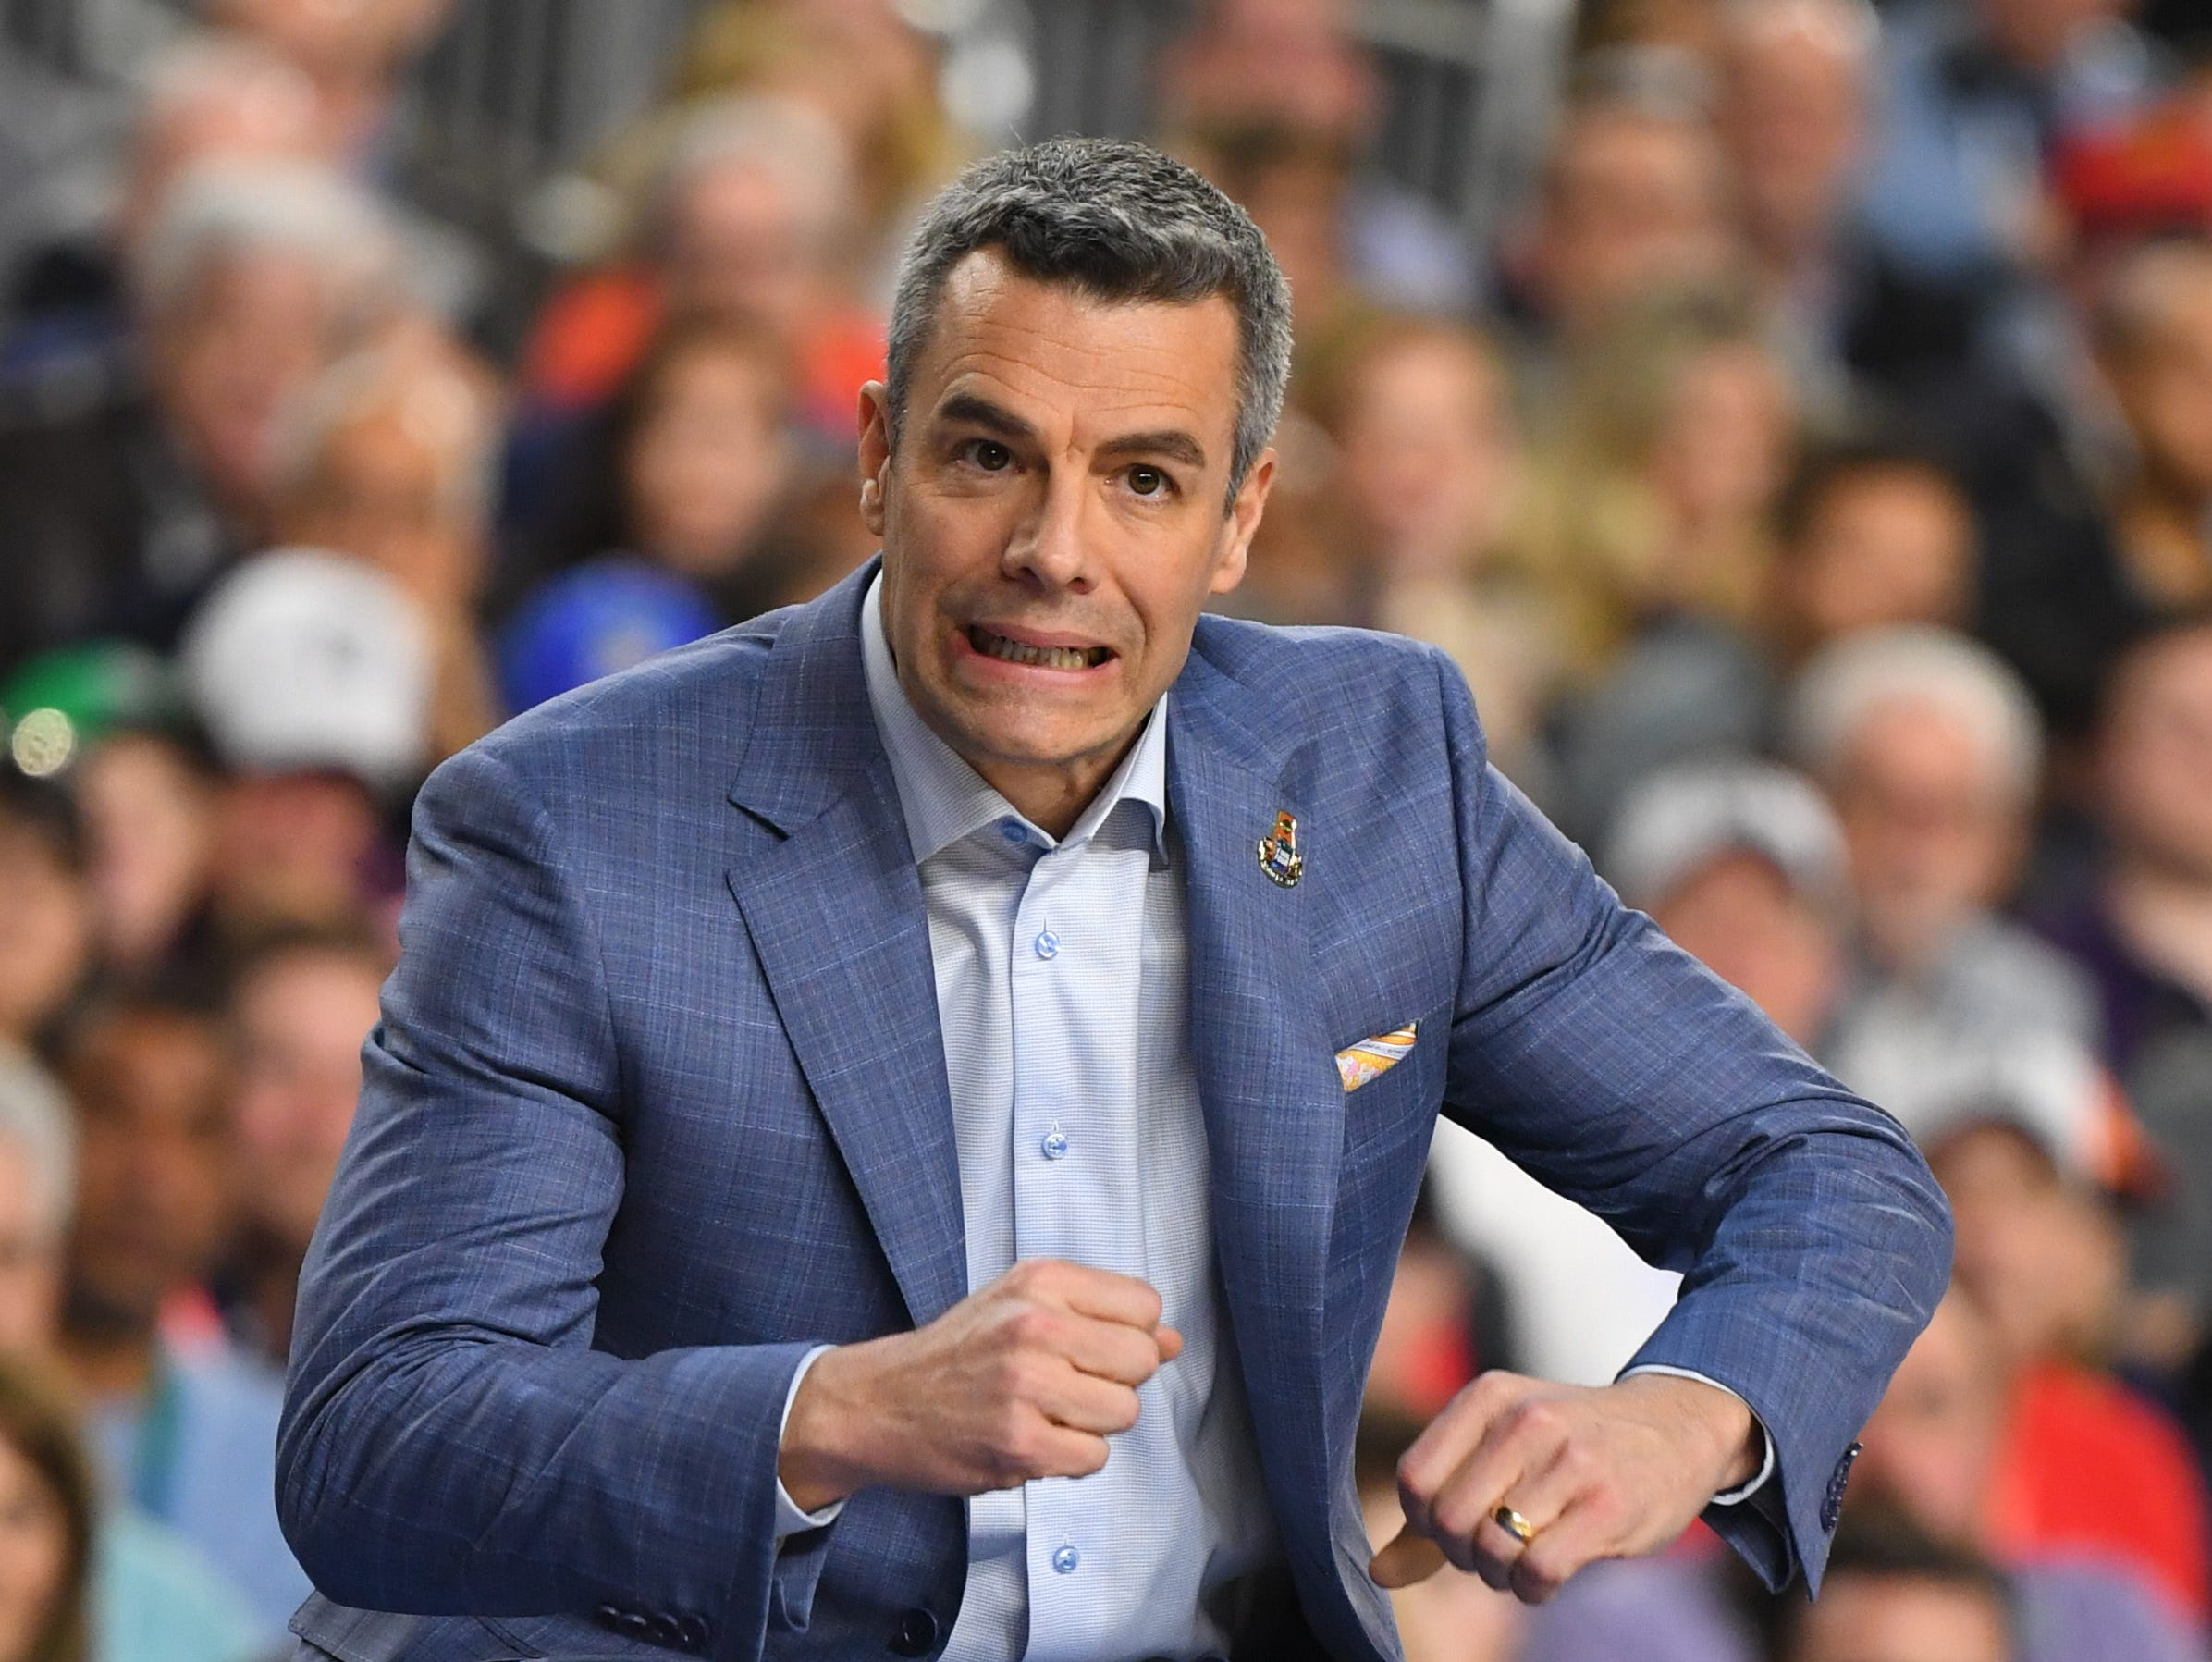 Apr 8, 2019; Minneapolis, MN, USA; Virginia Cavaliers head coach Tony Bennett reacts from the sideline against the Texas Tech Red Raiders in the championship game of the 2019 men's Final Four at US Bank Stadium. Mandatory Credit: Robert Deutsch-USA TODAY Sports